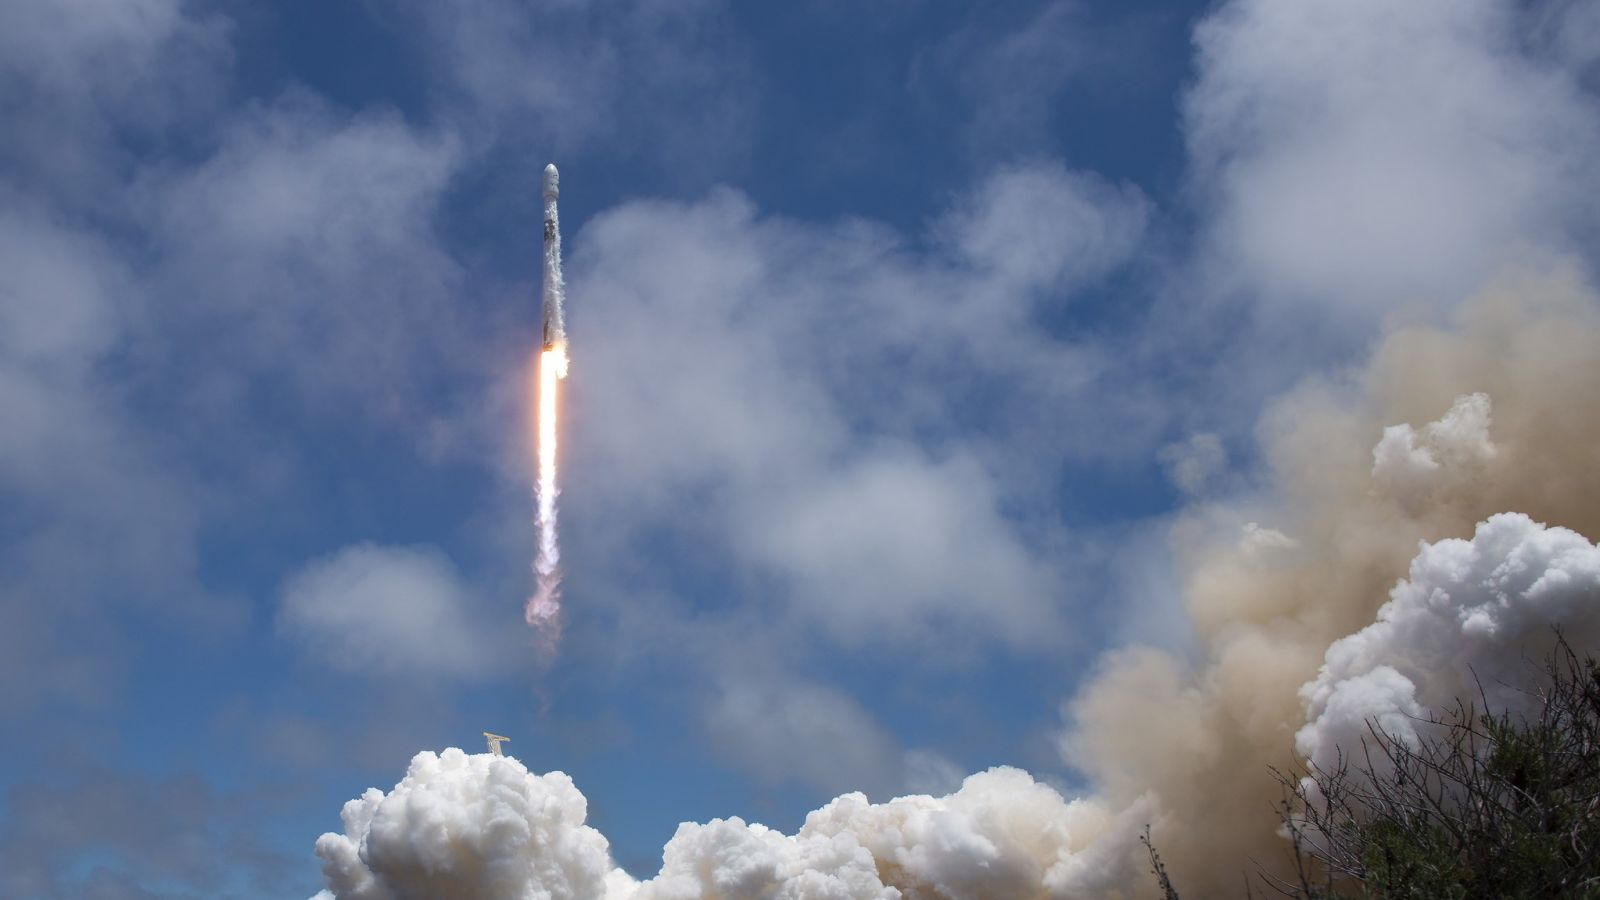 A SpaceX Falcon 9 soars skyward with five Iridium NEXT satellites and NASA's twin GRACE-FO spacecraft. Liftoff took place at 12:47 p.m. PDT (19:47 GMT) May 22, 2018, from Space Launch Complex 4E at Vandenberg Air Force Base in California. Photo Credit: Bill Ingalls / NASA